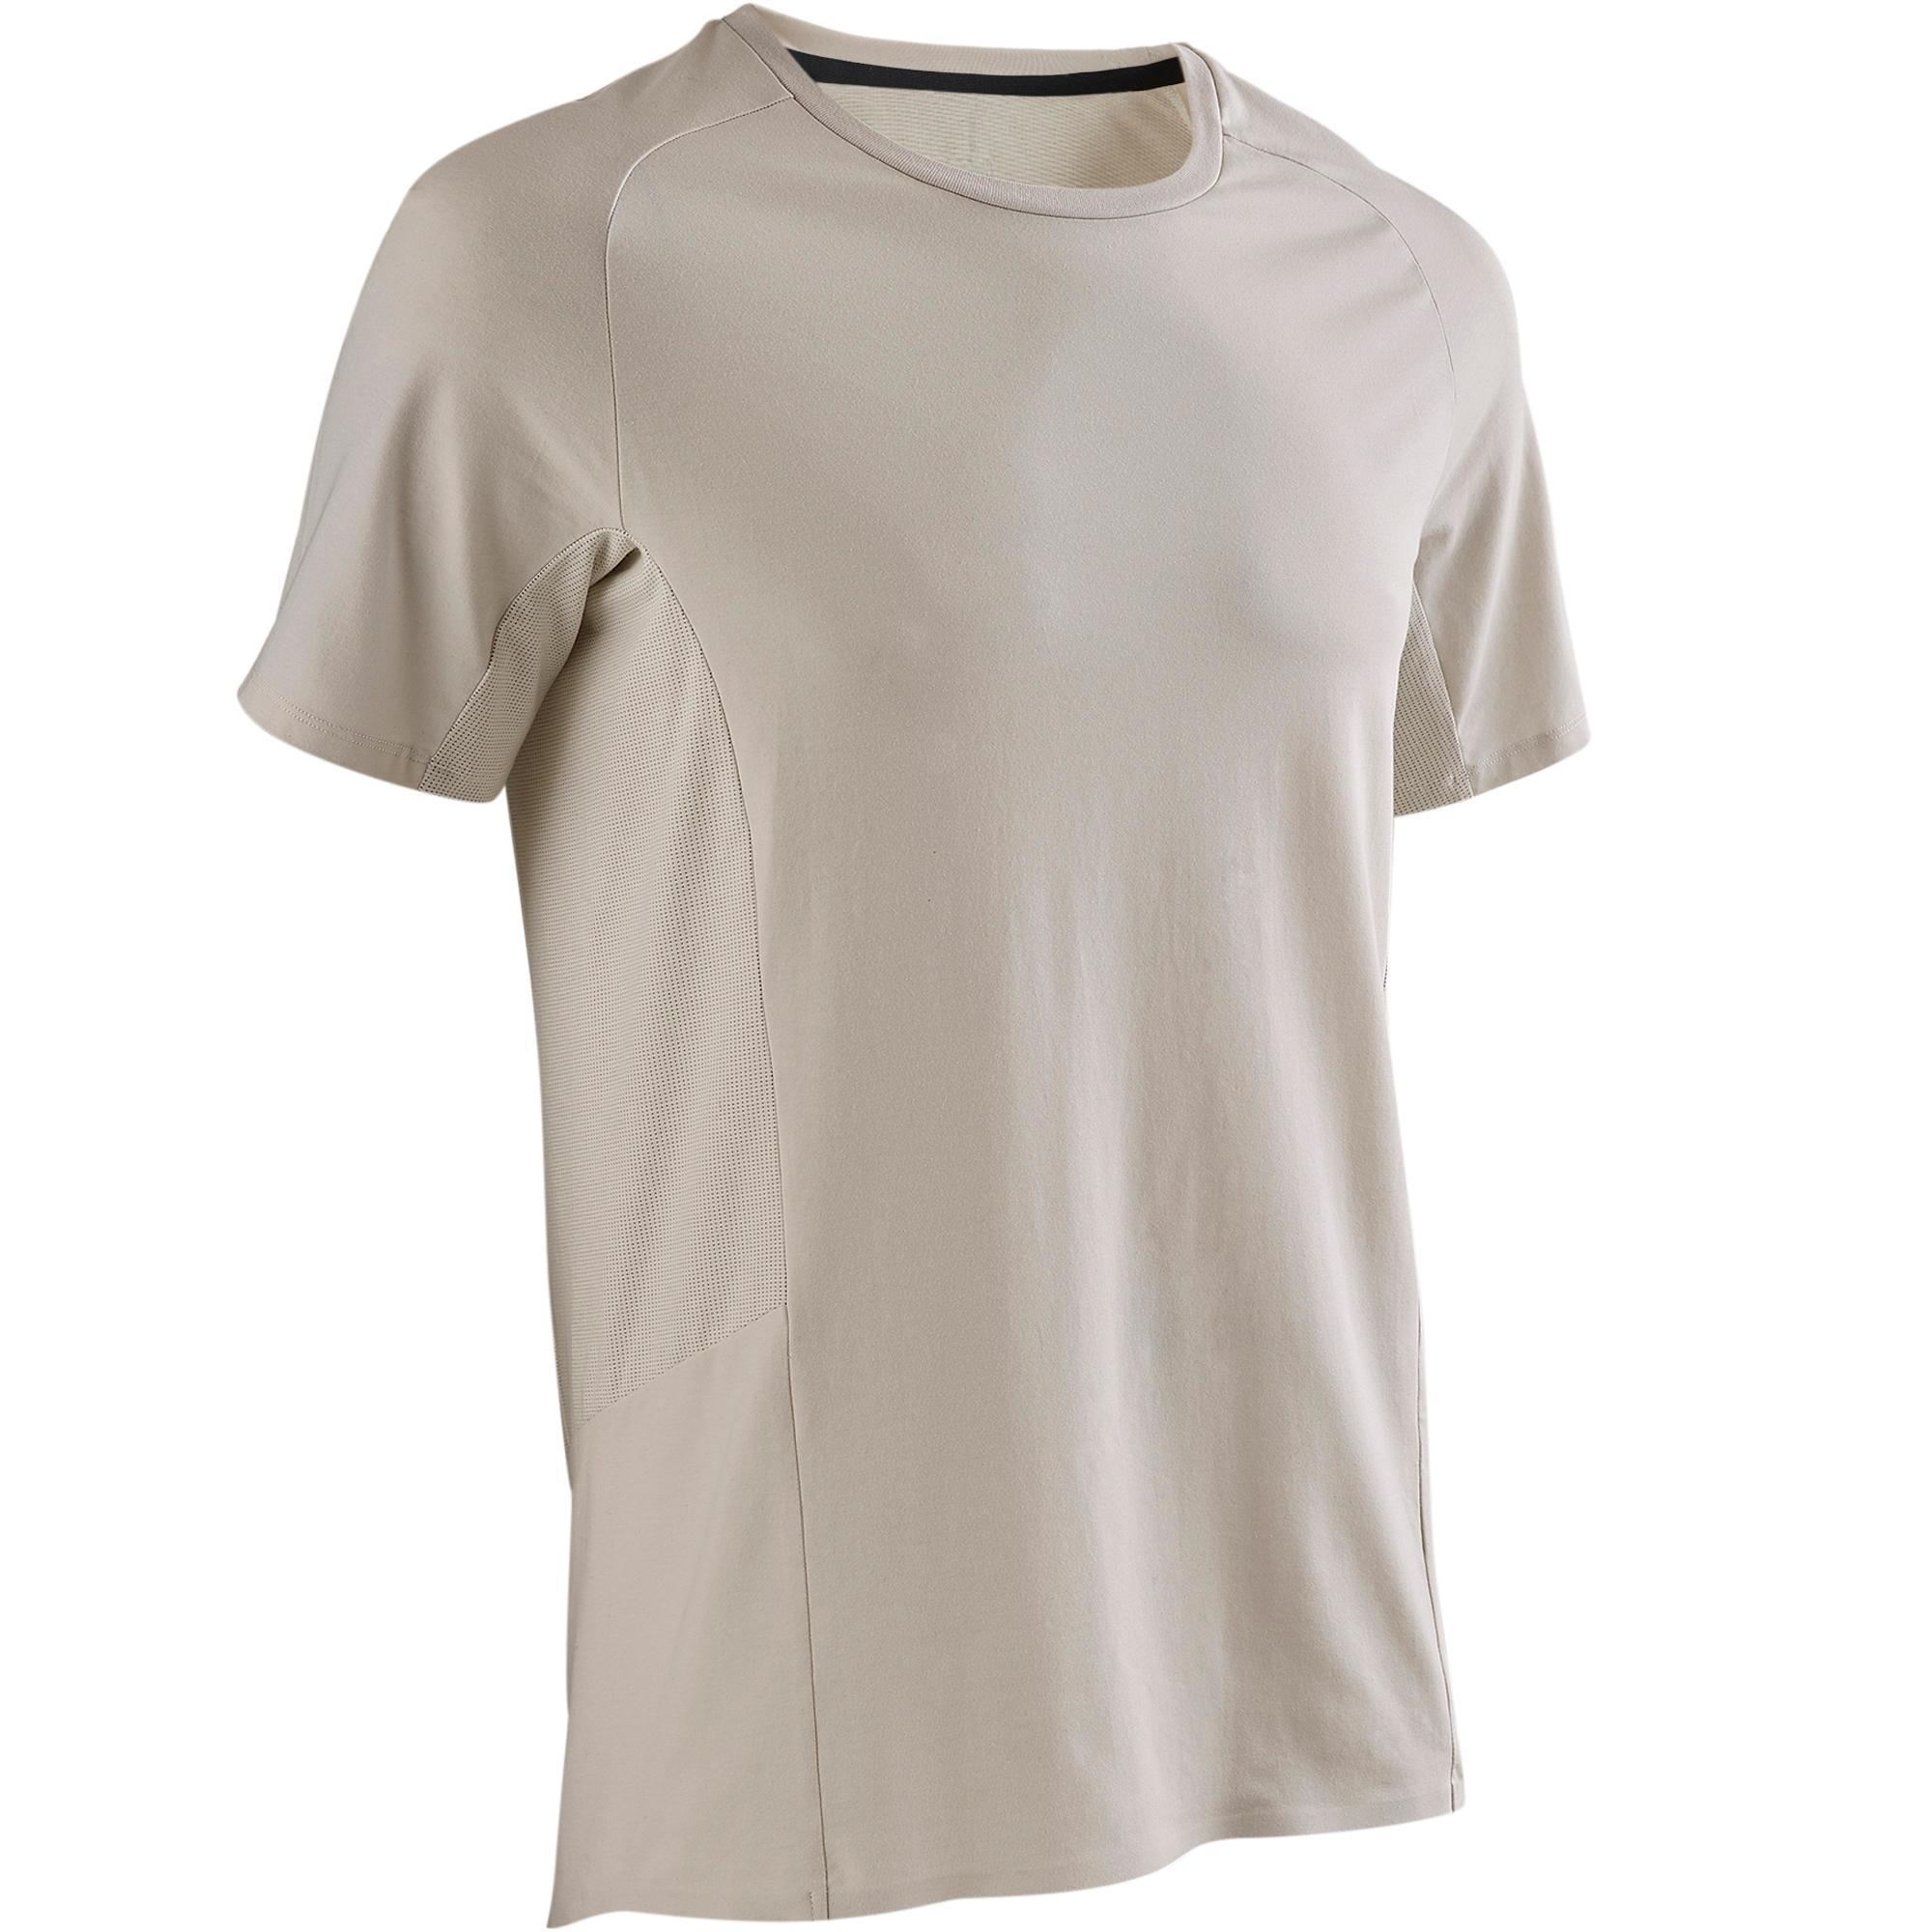 Domyos T-shirt 560 pilates en lichte gym heren beige